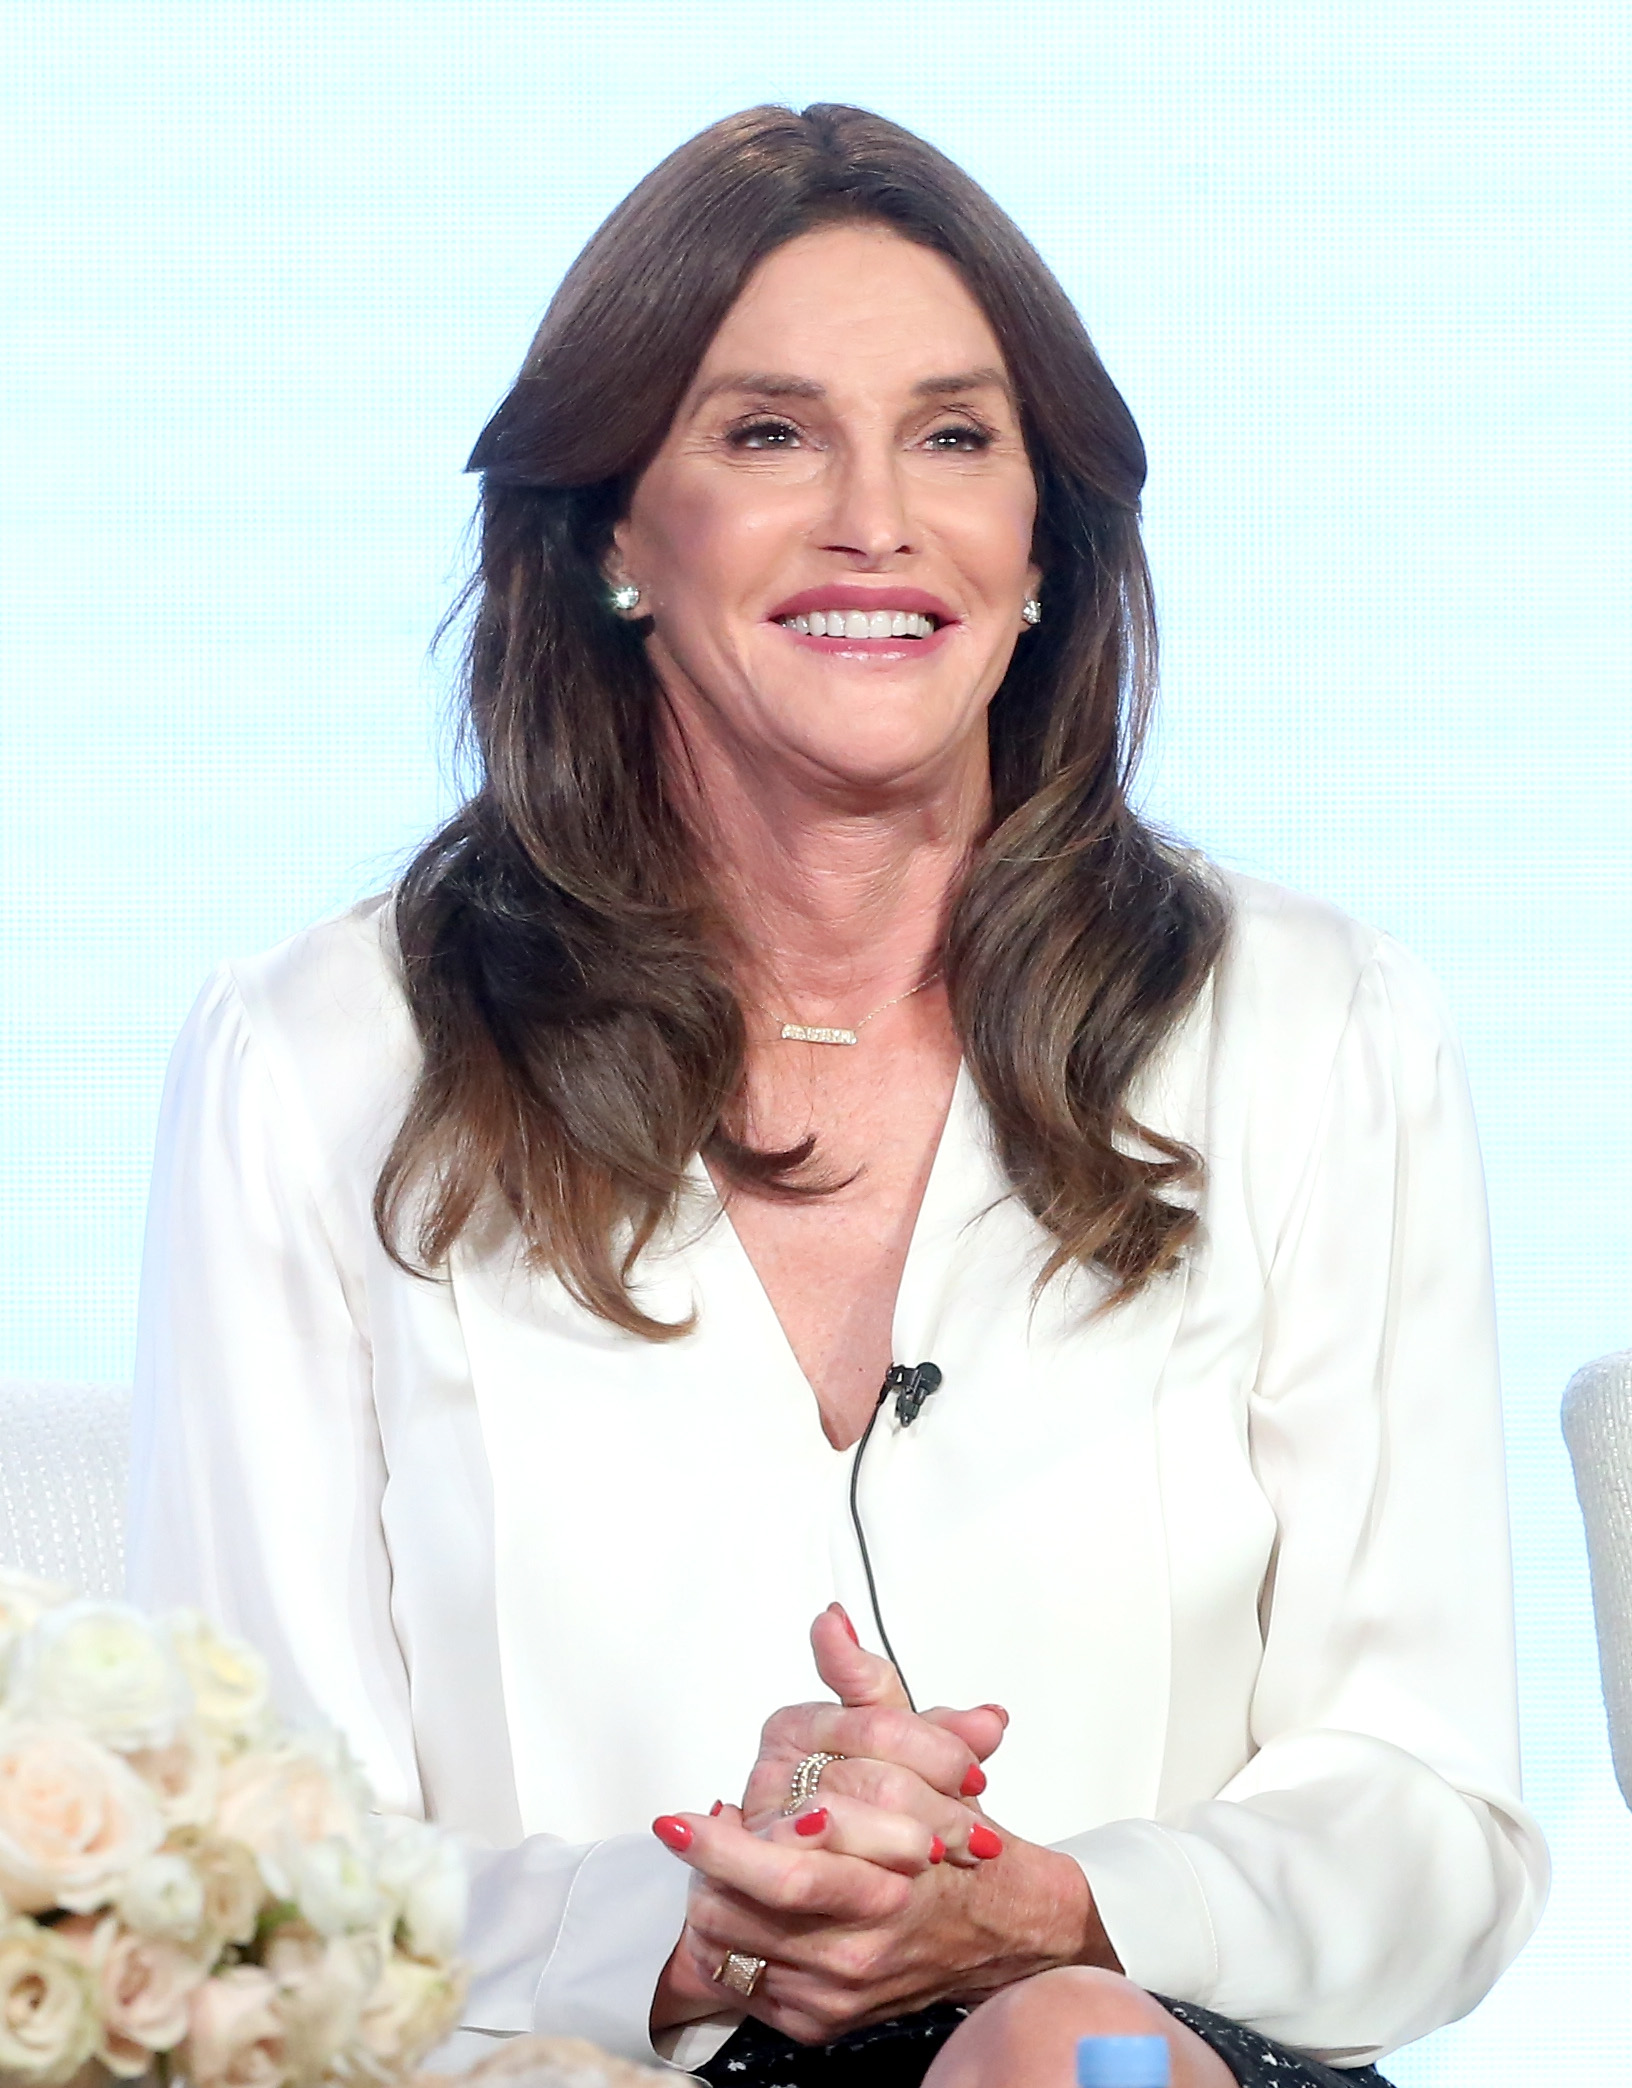 Executive producer/tv personality Caitlyn Jenner speaks onstage during 'I Am Cait' panel discussion on Jan. 14, 2016 in Pasadena, California.